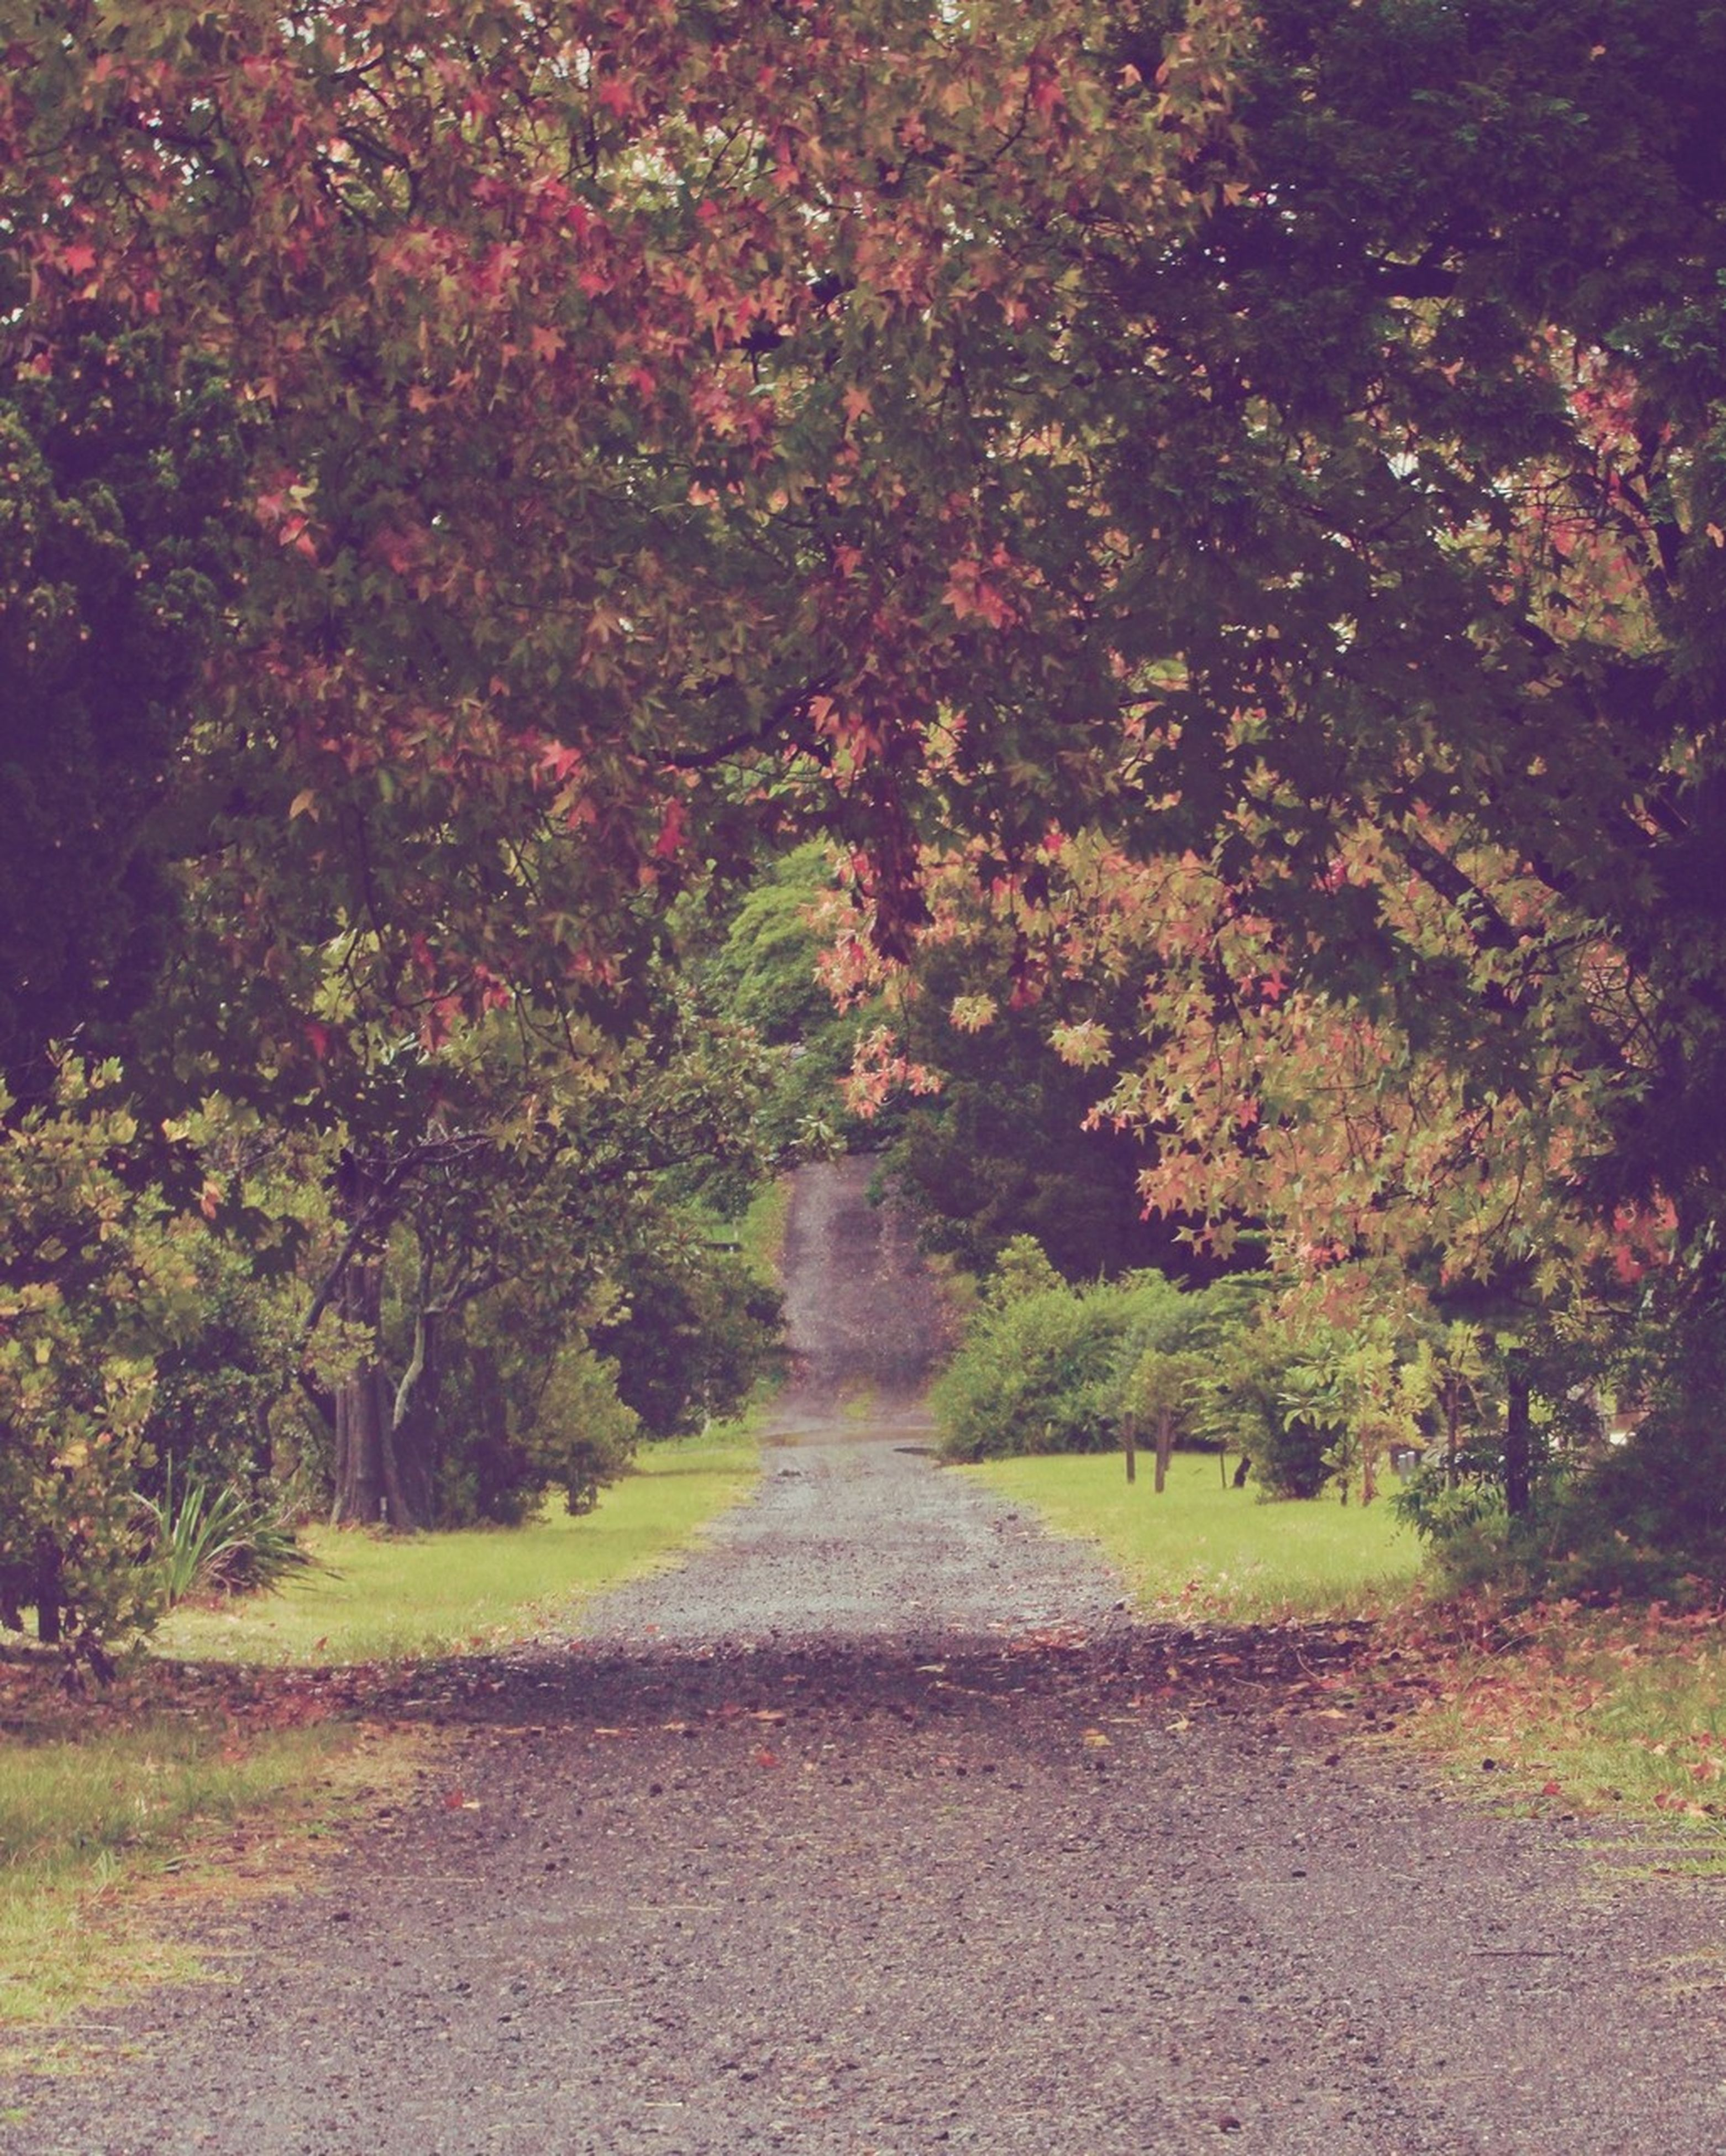 tree, the way forward, growth, tranquility, nature, beauty in nature, footpath, tranquil scene, autumn, diminishing perspective, leaf, change, scenics, road, plant, vanishing point, park - man made space, green color, outdoors, pathway